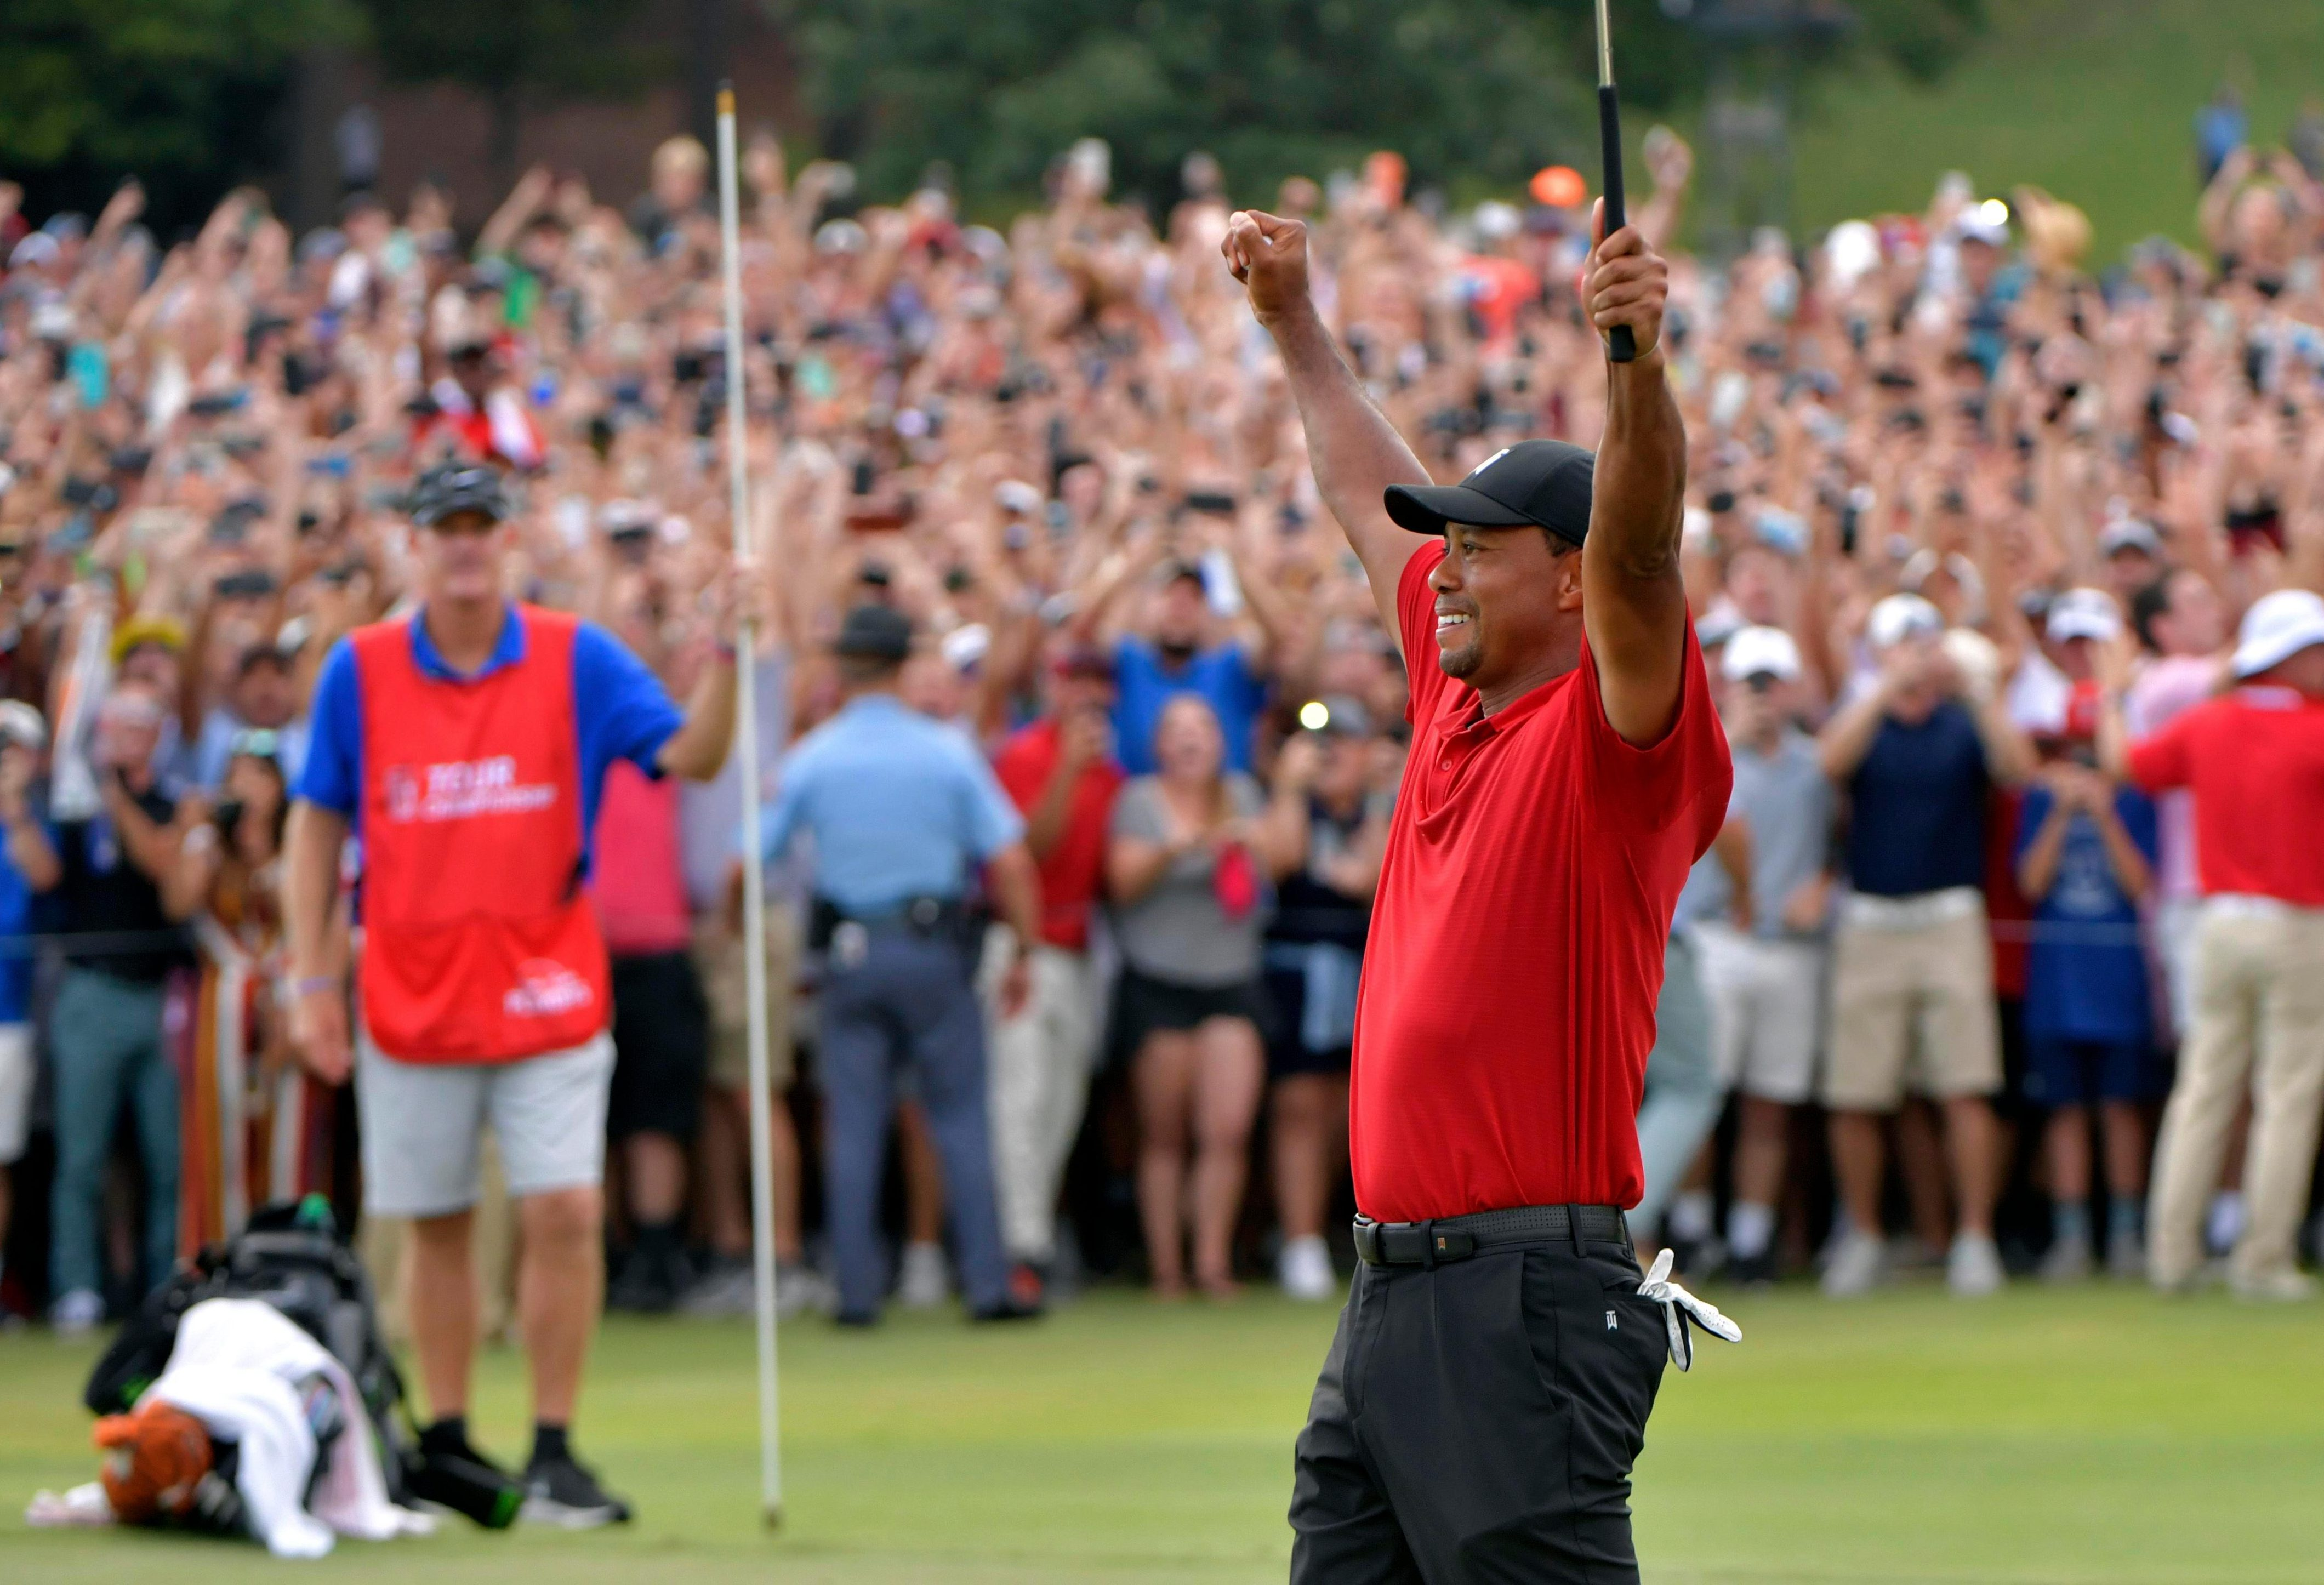 Tiger Woods is always a big pull with fans and could be part of a special PPV event